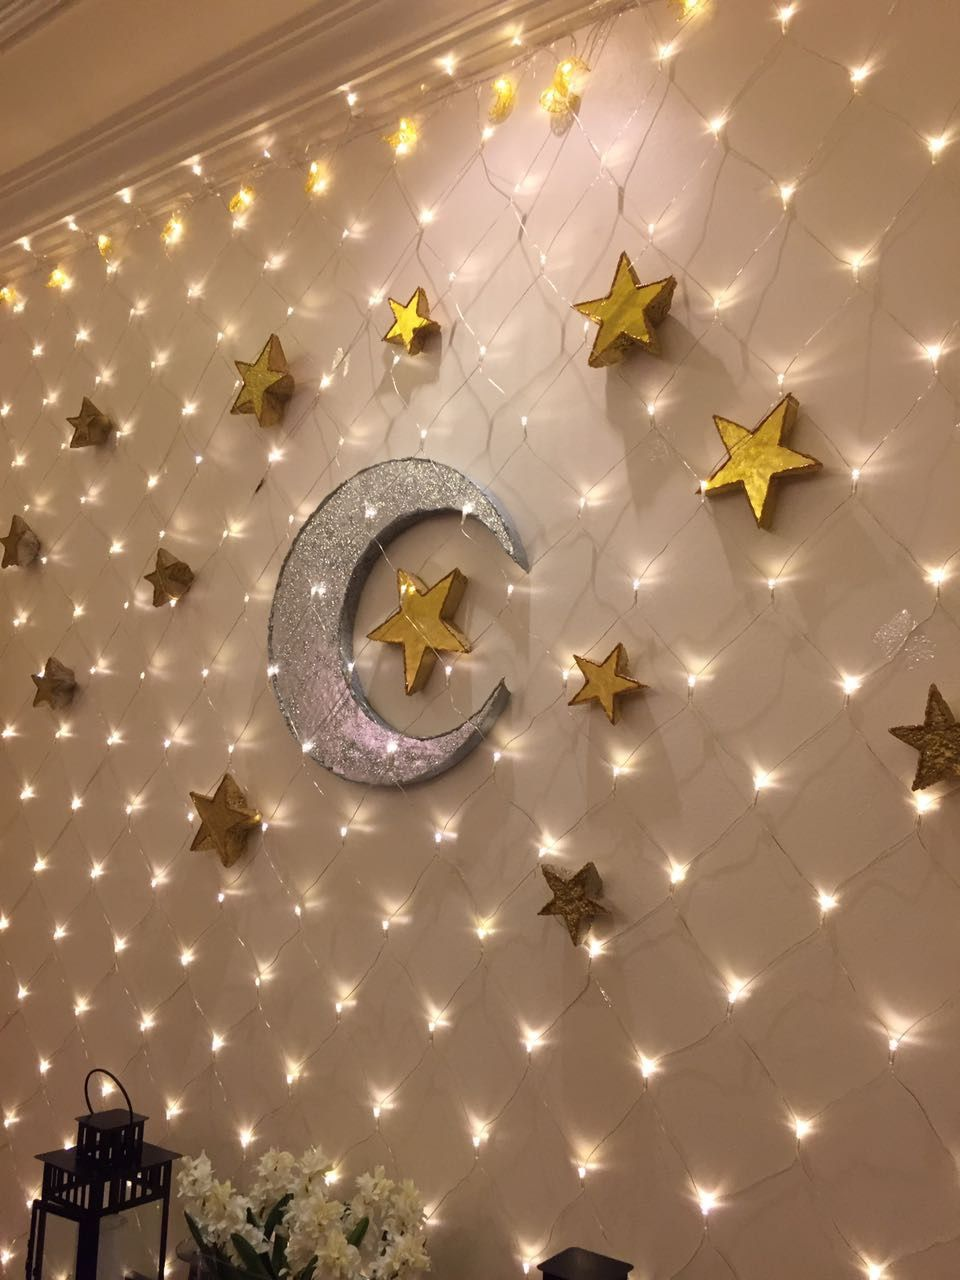 Best Traditional Ramadan Decorations Ideas At Home 2020